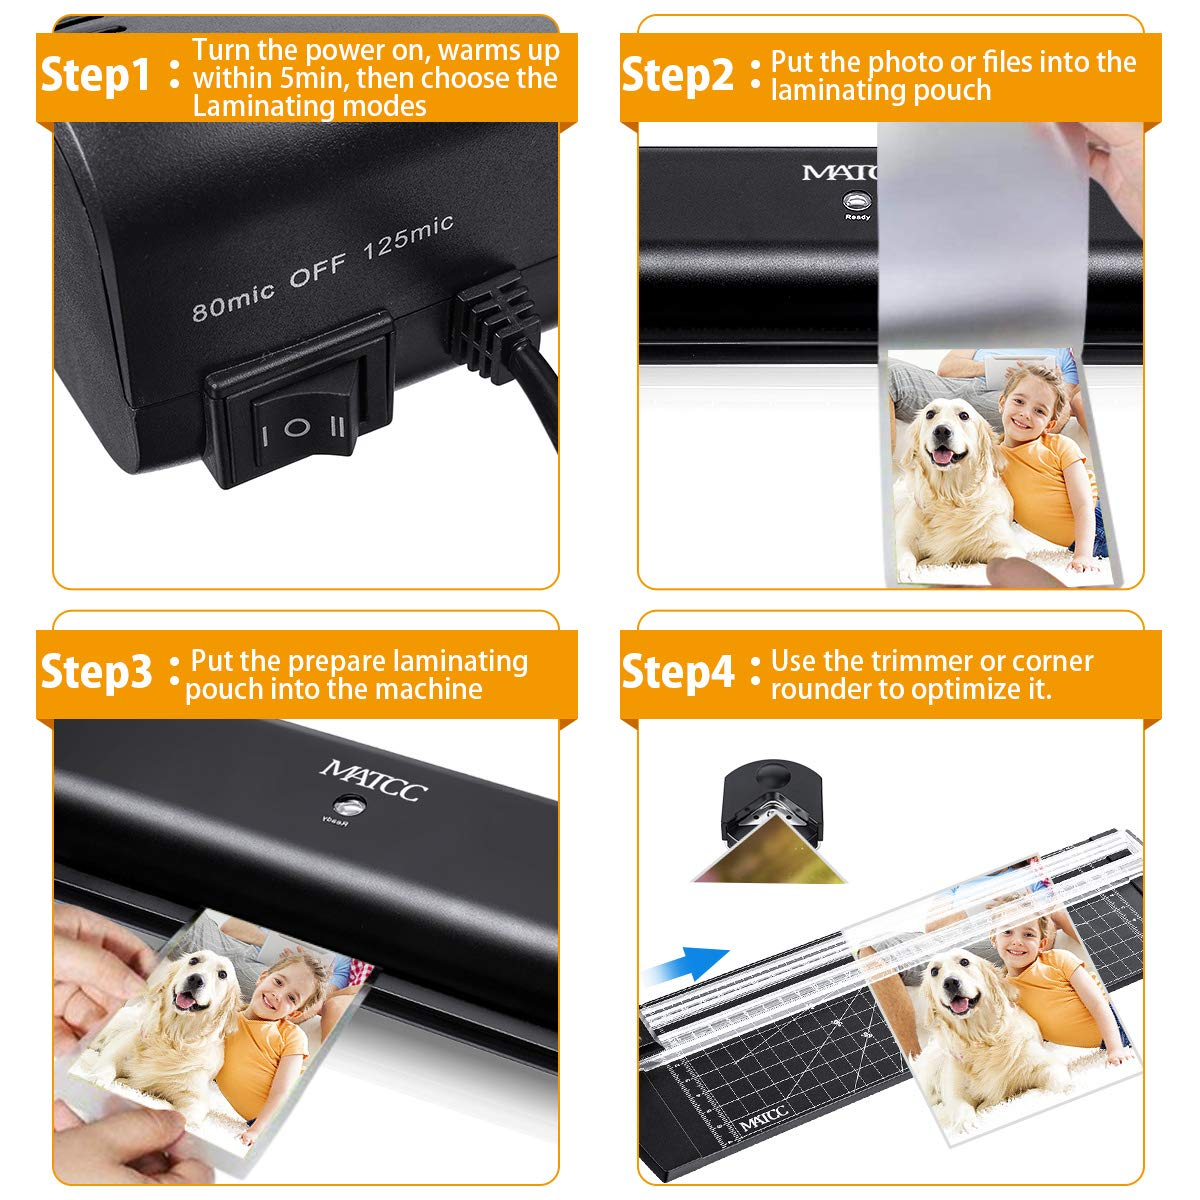 MATCC 13'' Thermal Laminator Machine for A3/A4/A6 Laminating Machine with Paper Cutter and Corner Rounder 2 Roller System Laminator Machine Faster Warm-up Quick Laminating Speed Suit for Home Art by MATCC (Image #5)